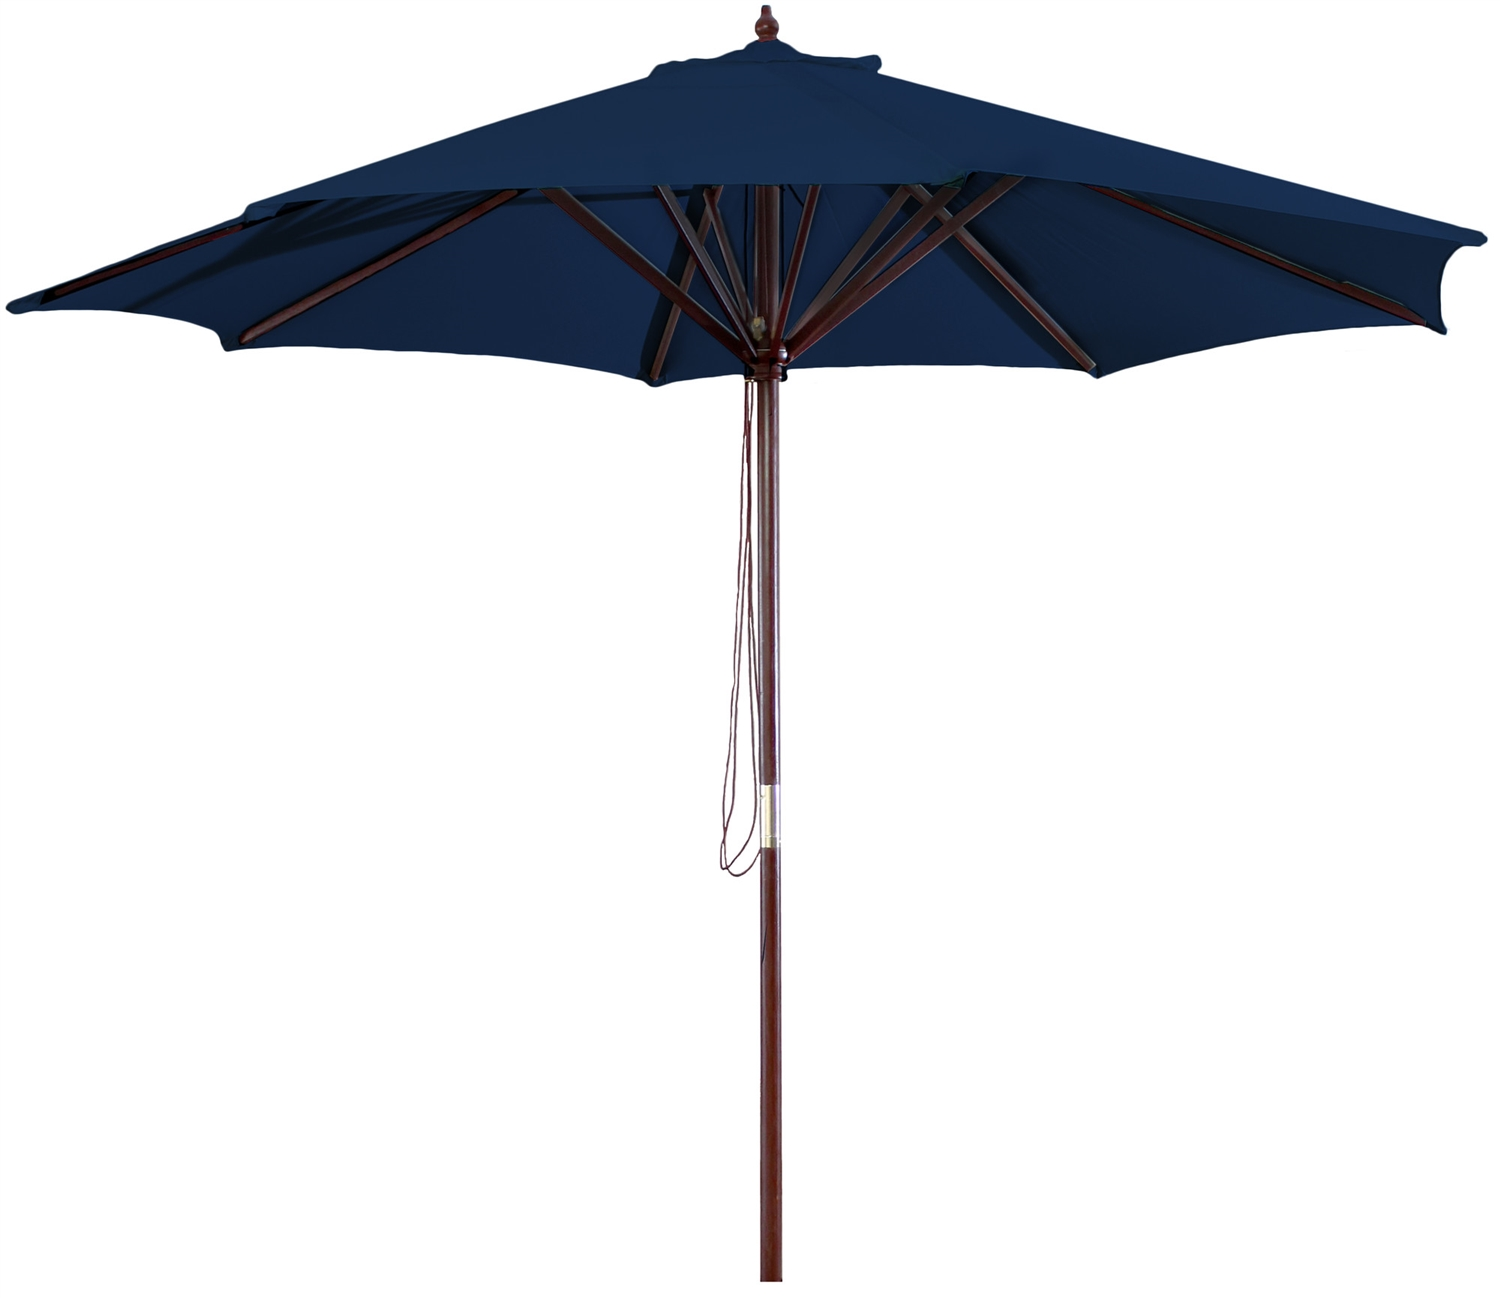 Navy Blue 9 Foot Outdoor Patio Umbrella With Wood Frame And Pulley